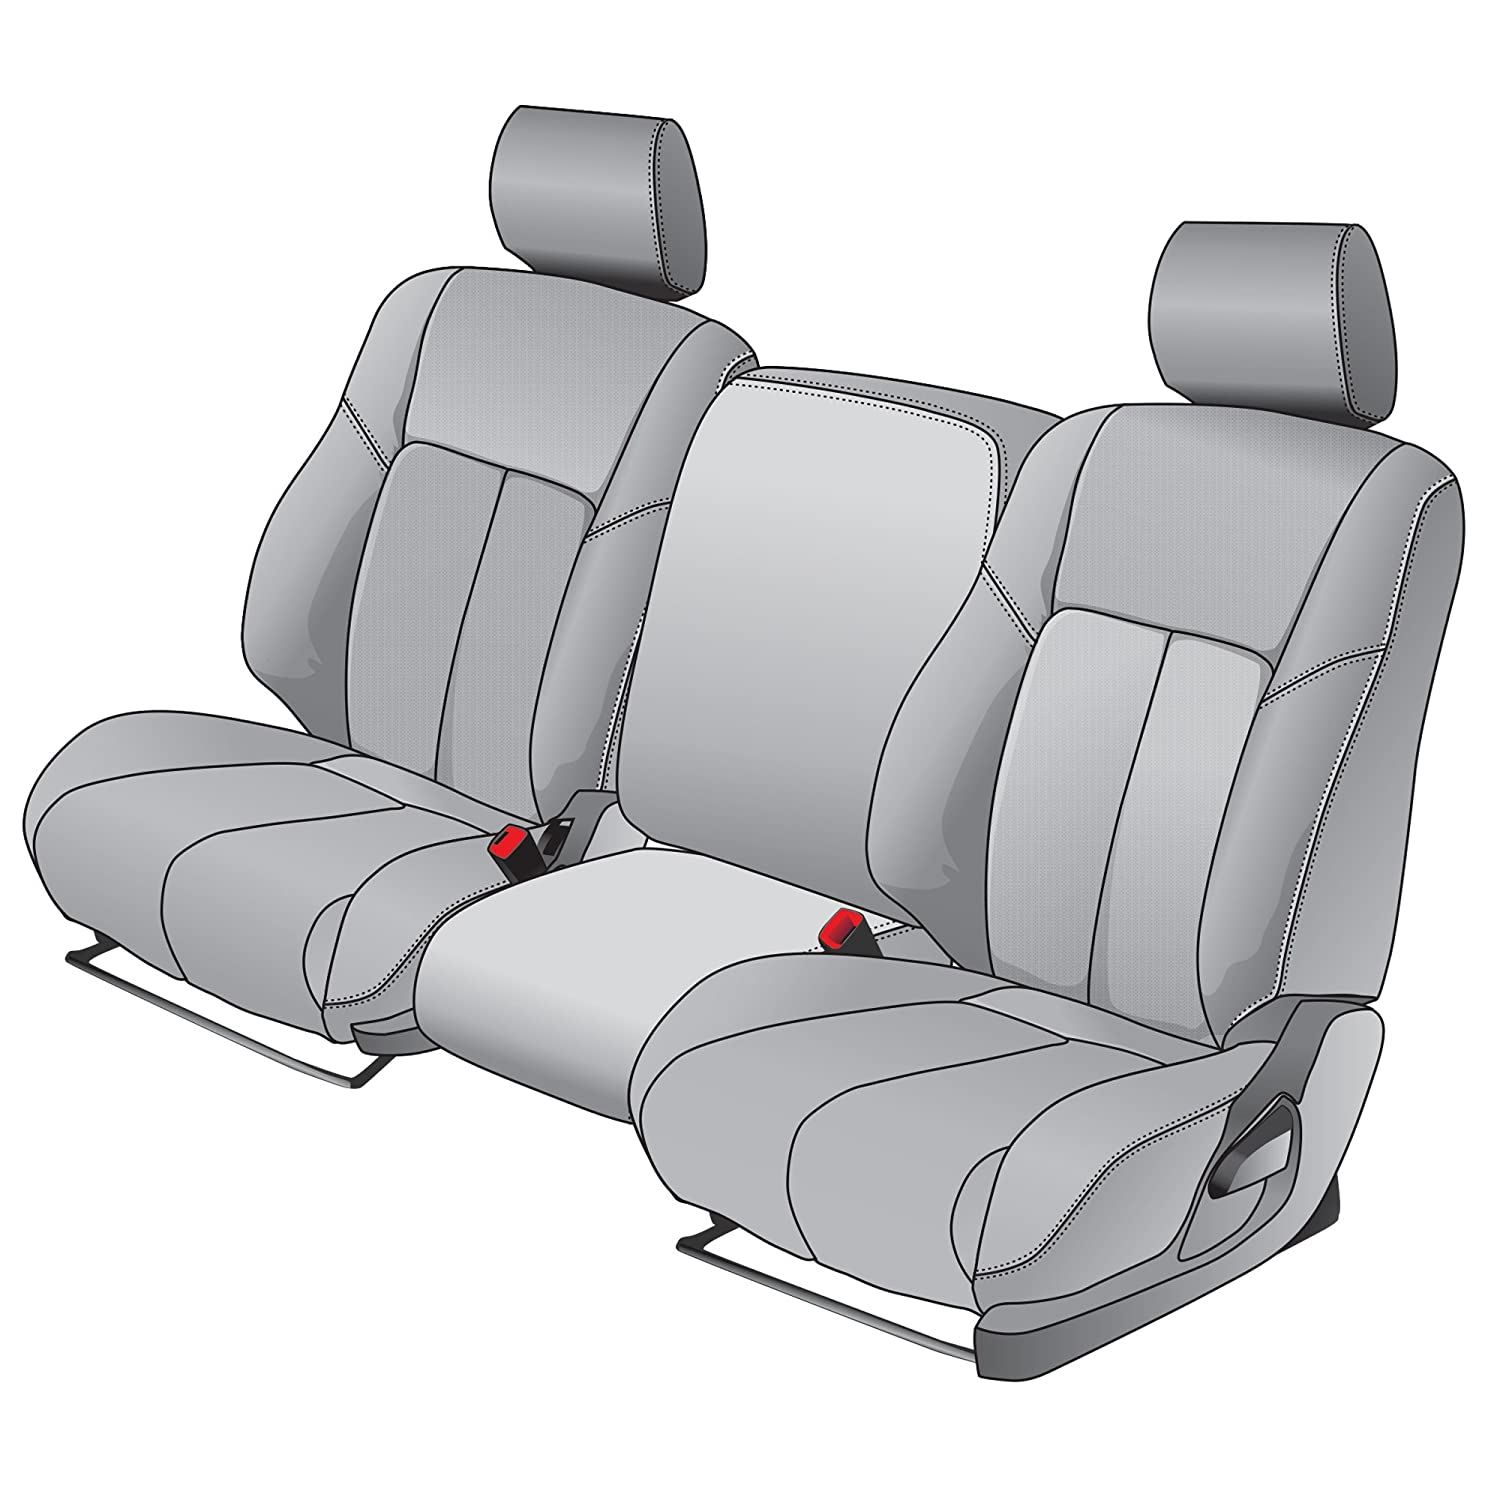 Clazzio 753541lgy Light Grey Leather Front Row Seat Cover for Chevrolet Tahoe//Suburban